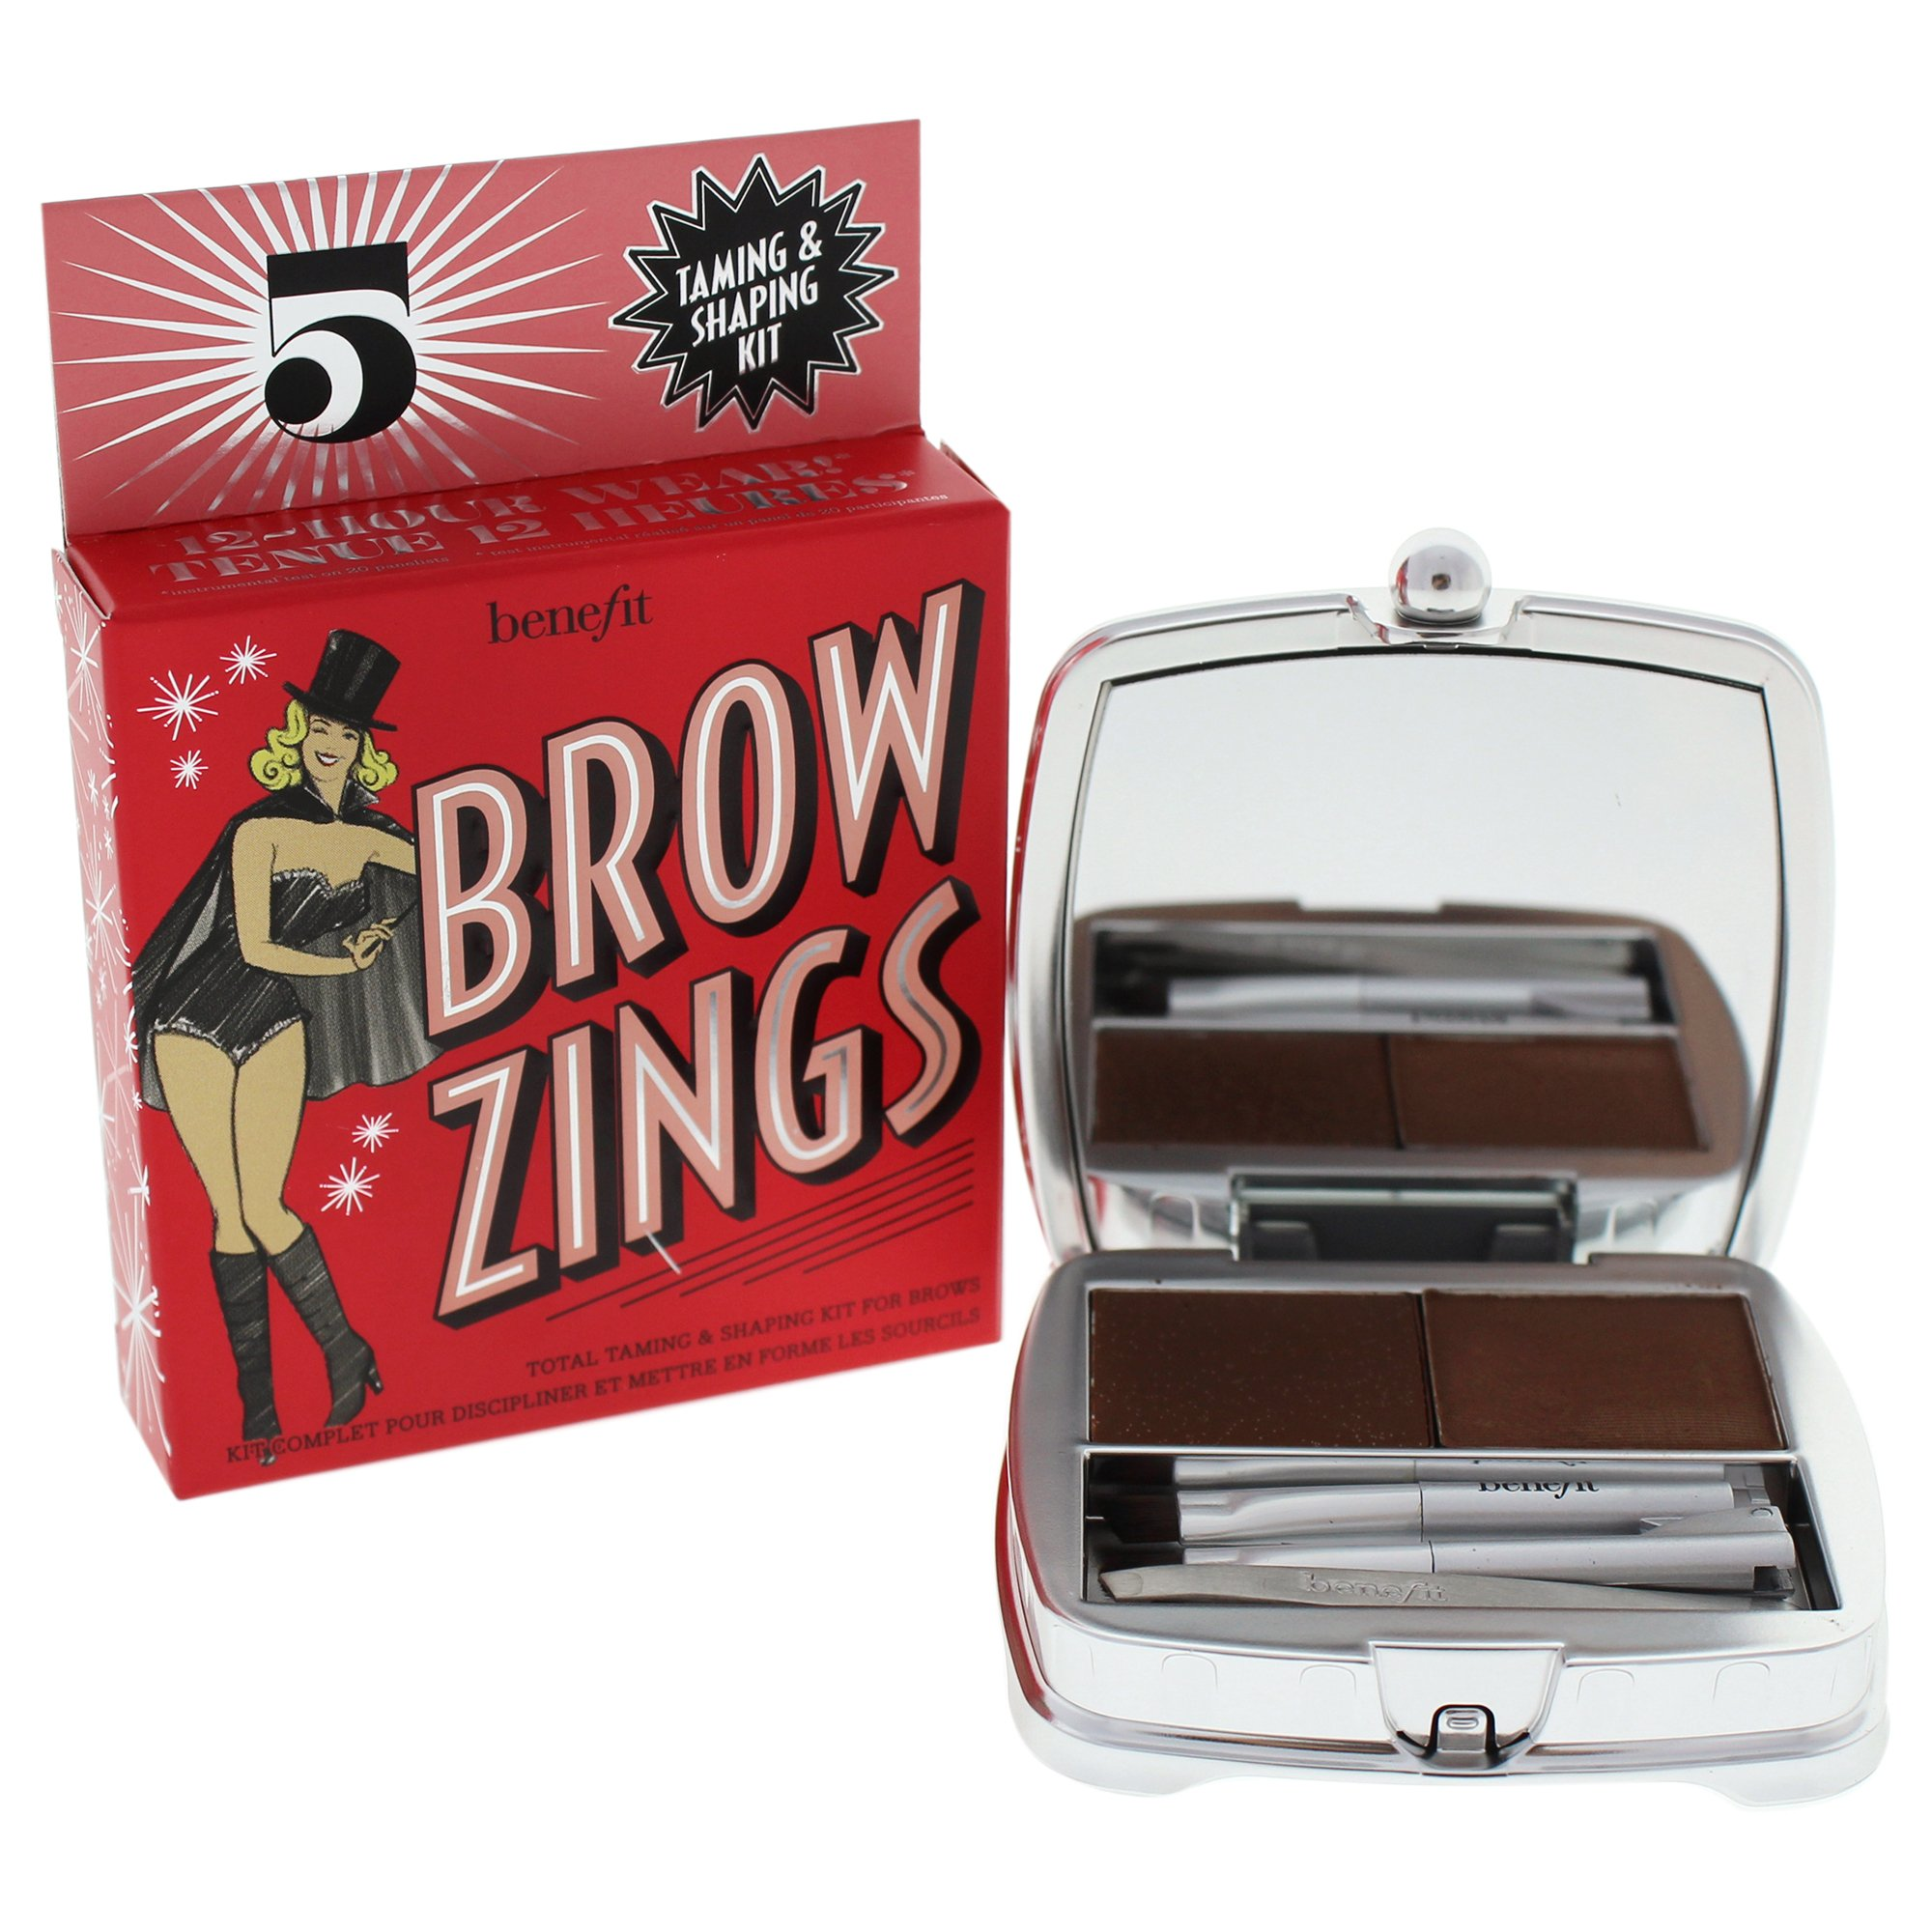 Benefit Brow Zings Total Taming and Shaping Kit, No. 5 Deep, 0.15 Ounce by Benefit (Image #1)